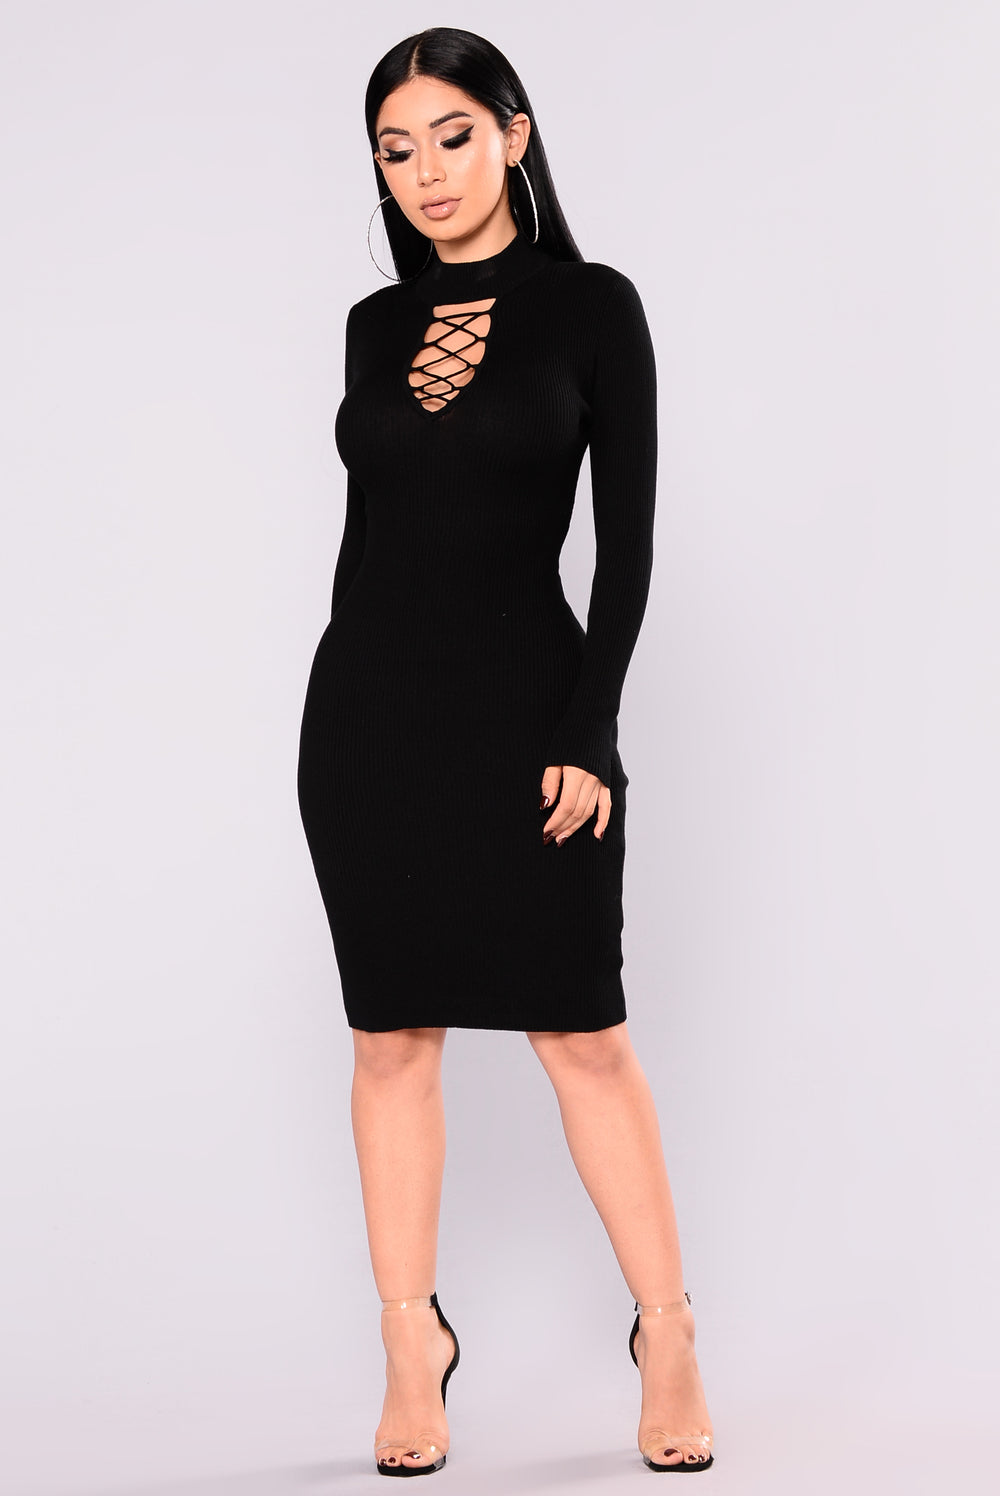 Mimi Sweater Dress - Black